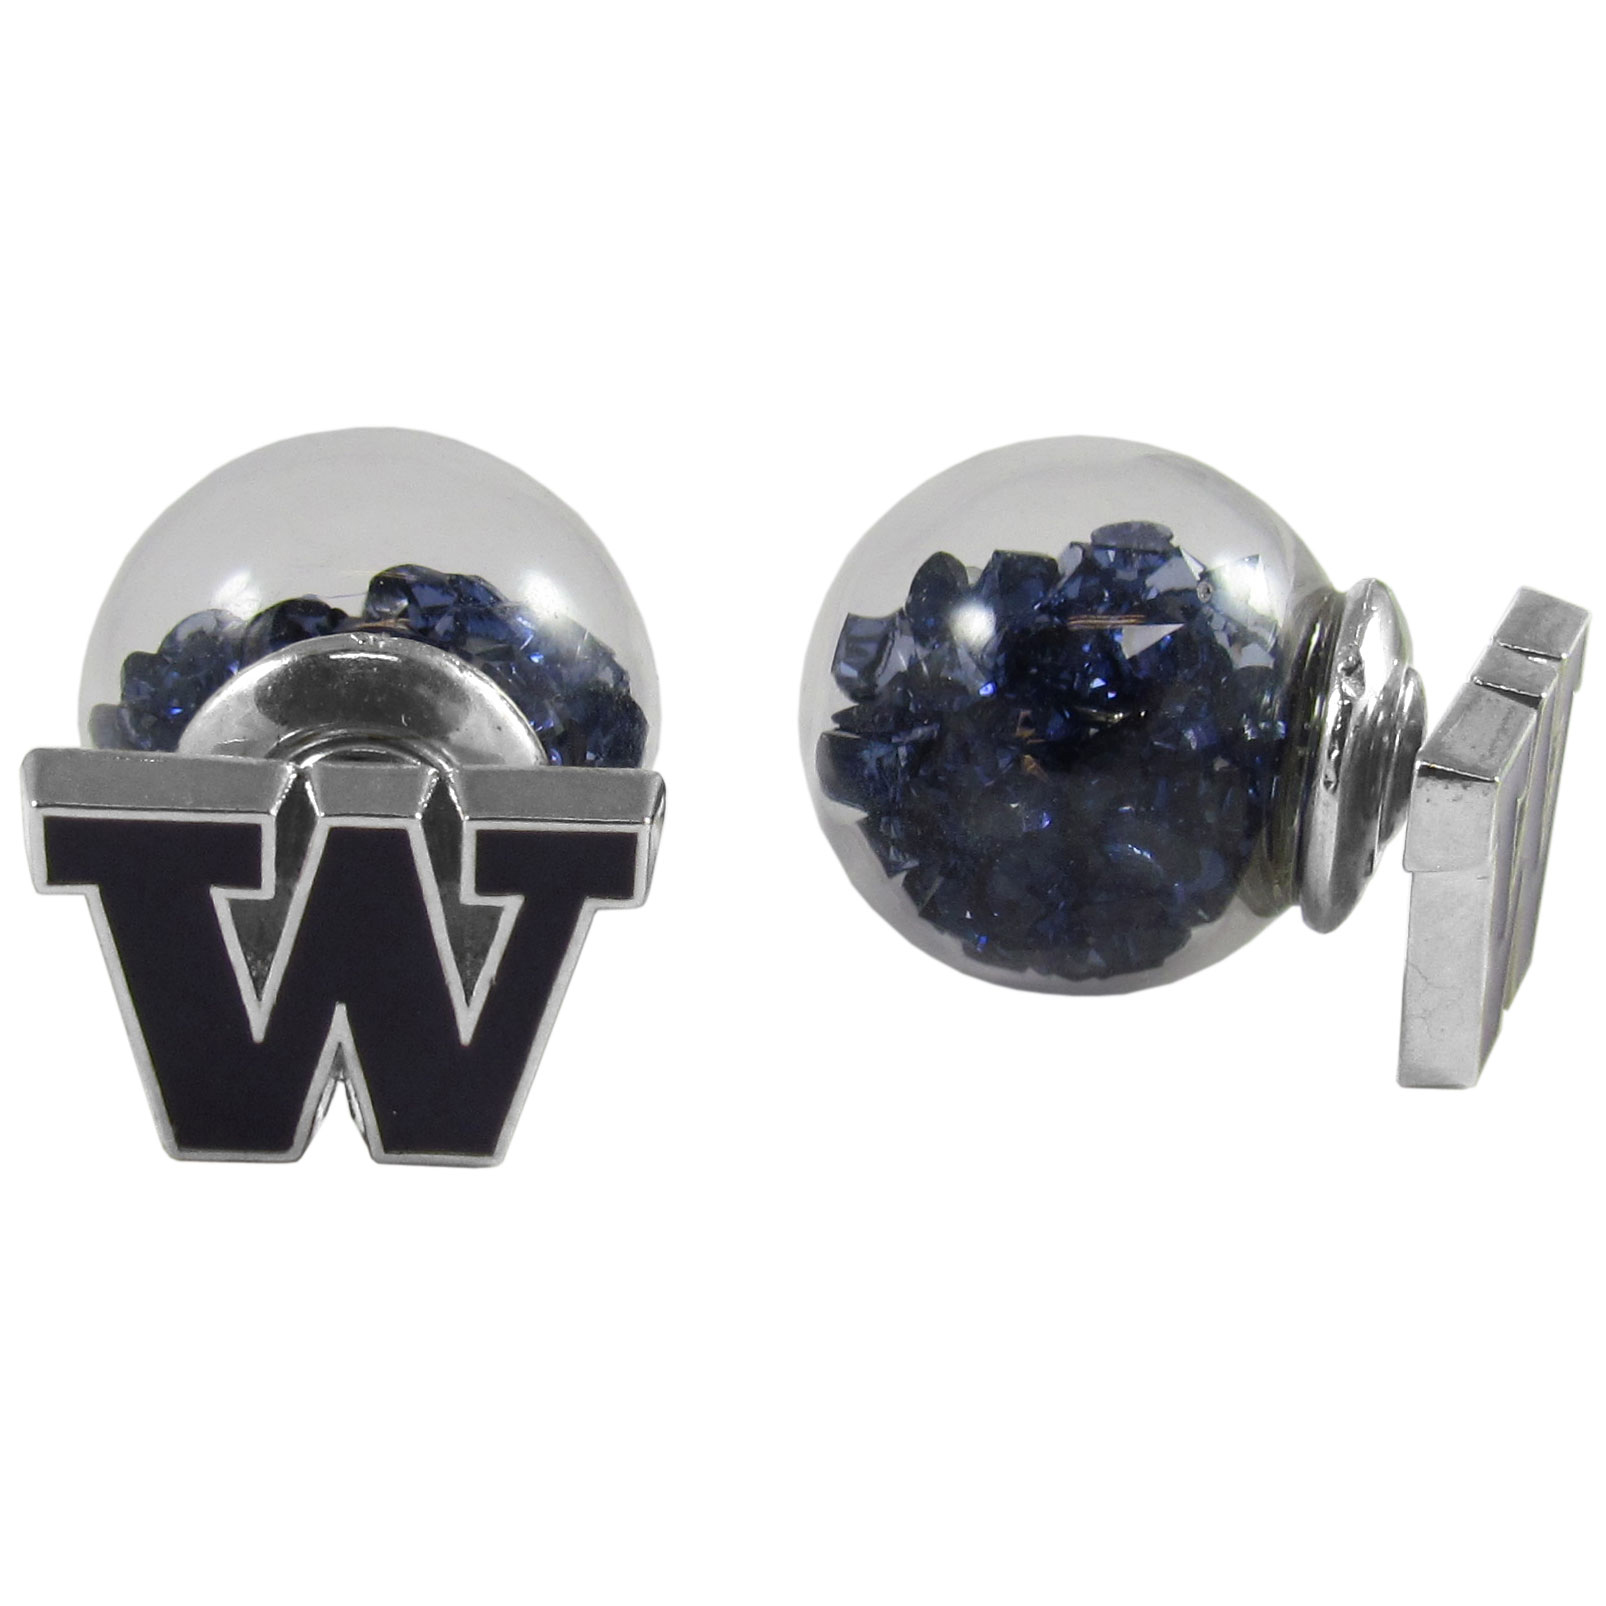 Washington Huskies Front/Back Earrings - Get in on one of the most popular trends in jewelry, front and back earrings! This must-have style is all of over the red carpets and we taken this contemporary look and paired it with your love of the Washington Huskies! The front of the earring is a sporty team logo and the back of these eye-catching earrings is a glass ball filled with colored crystal beads. This piece is perfect for a fashion-forward fan, with bold taste and trend-setting style.